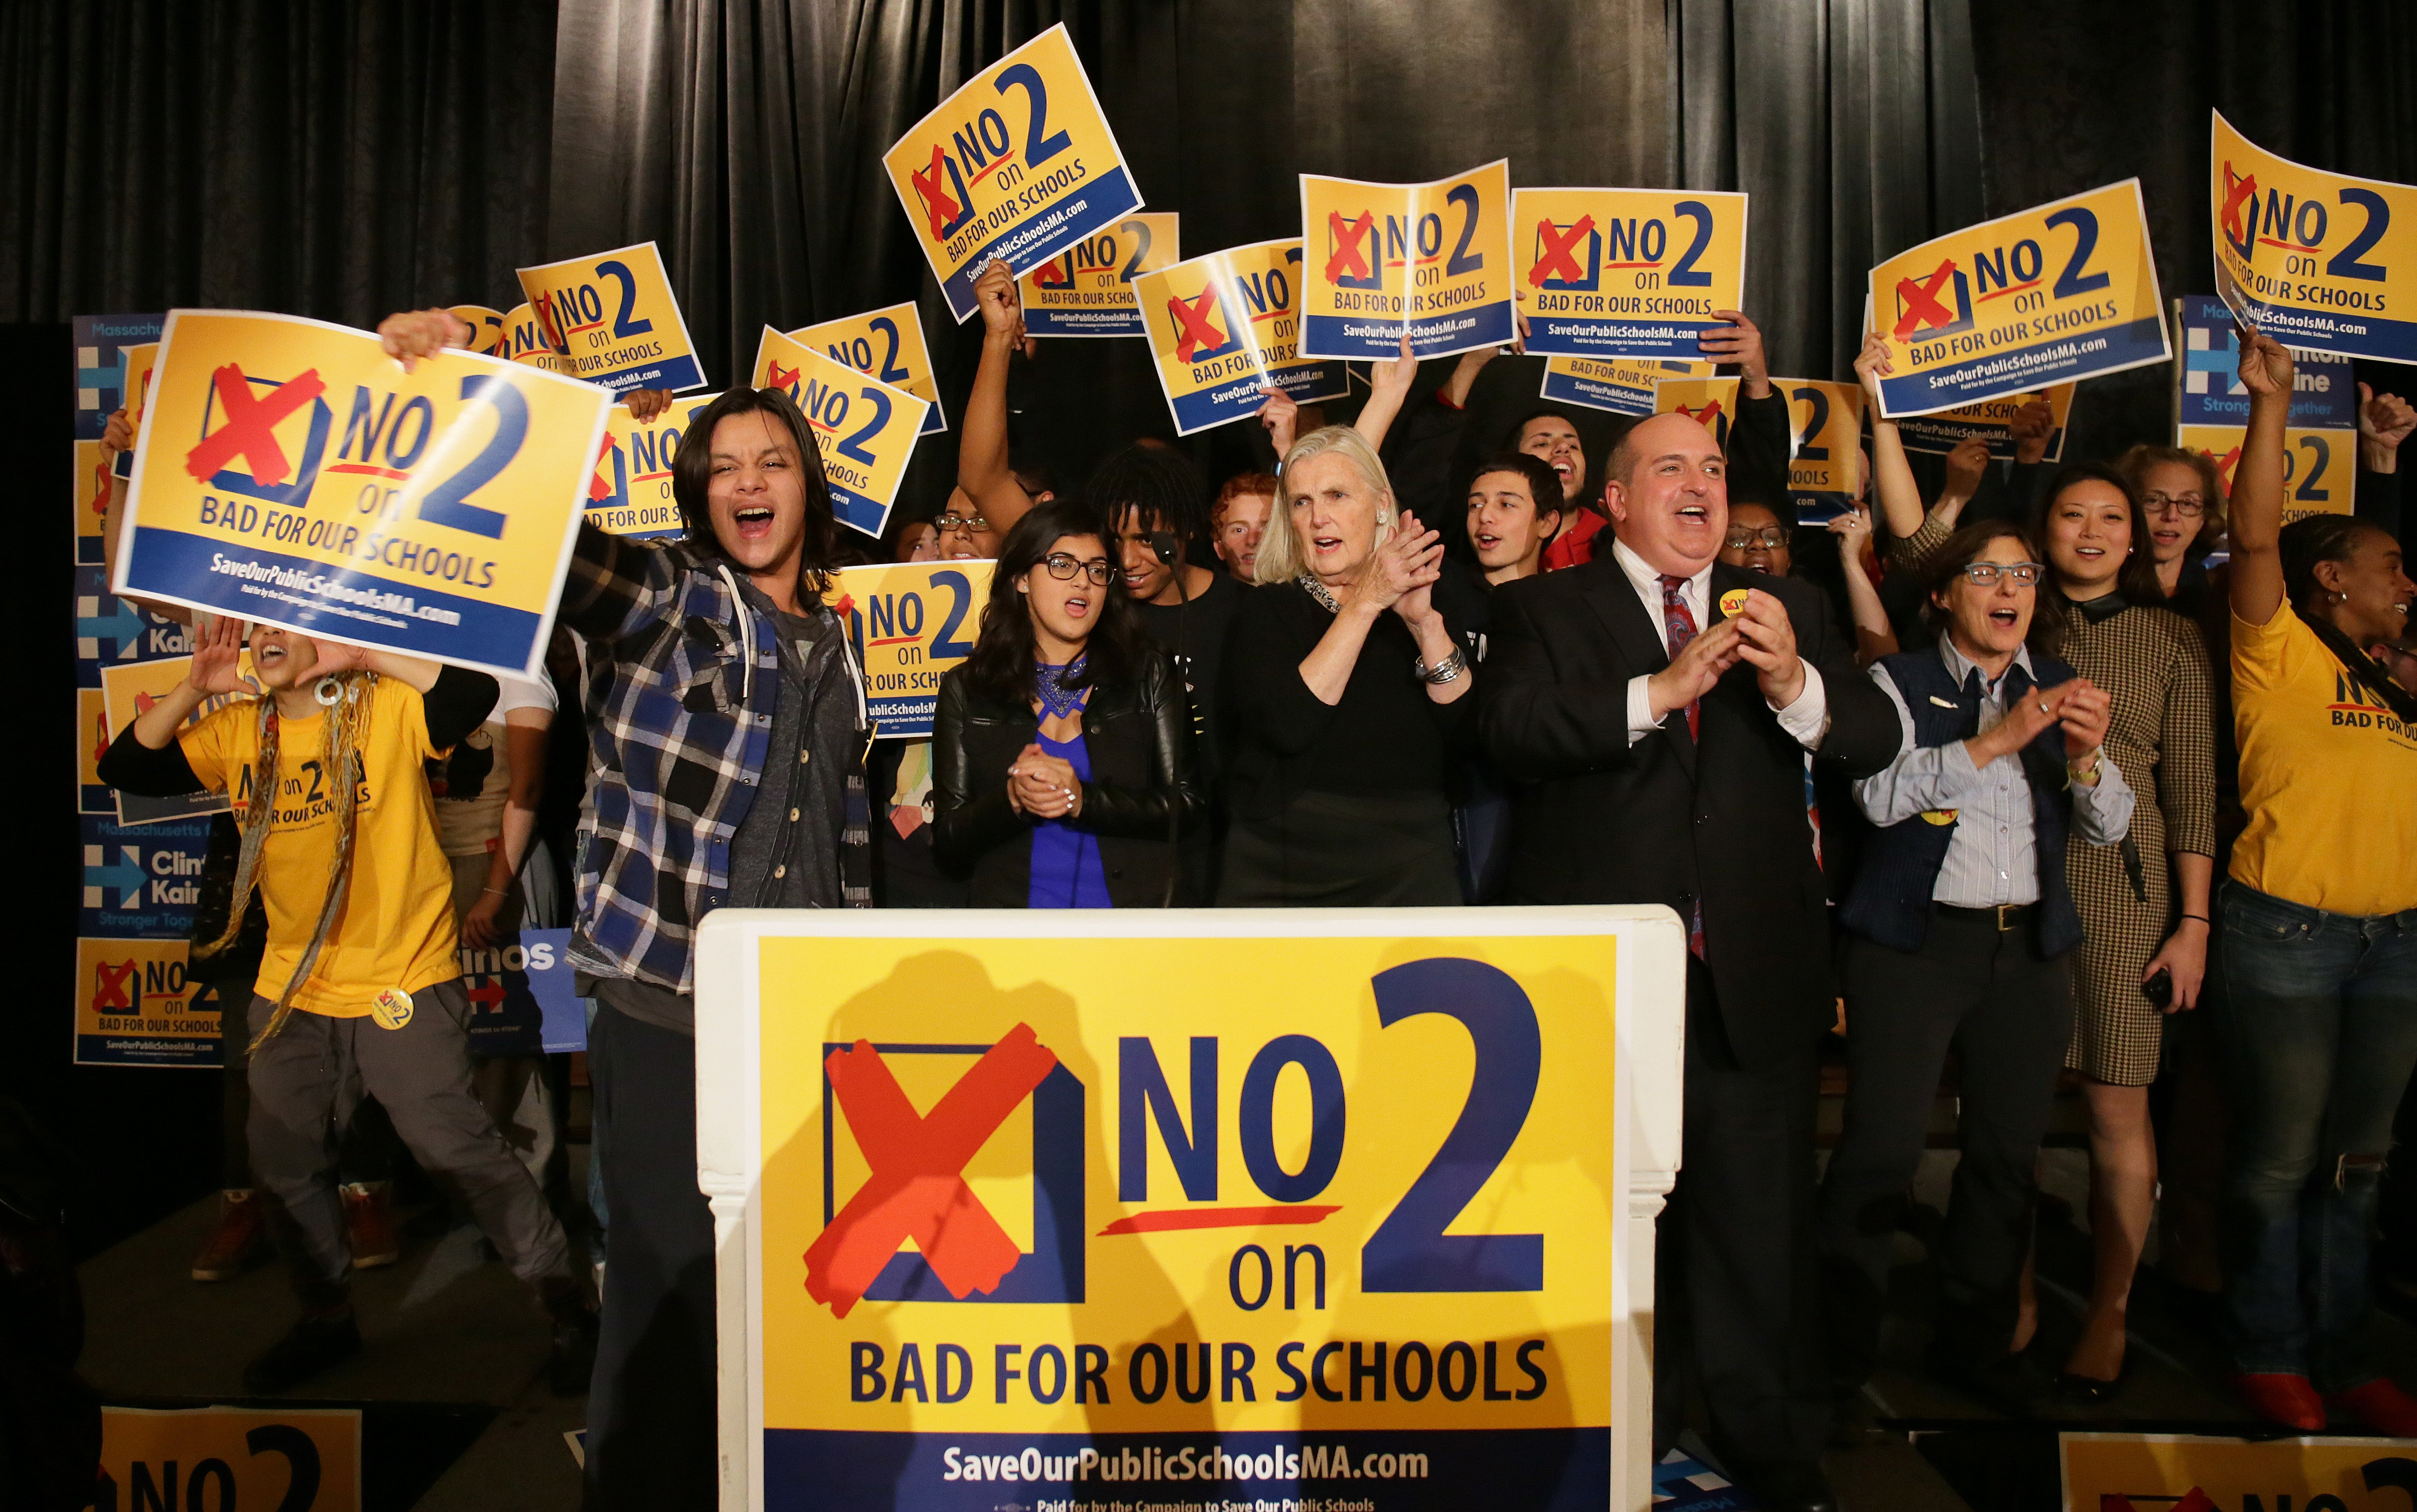 Boston, MA - 11/08/2016 - Anti-charter school activists celebrate tonight's results at a joint gathering at the State Democratic Party Election Night party at Fairmount Copley Plaza. - (Barry Chin/Globe Staff), Section: Metro, Reporter: David Scharfenberg, Topic: 09charter, LOID: 8.3.563314803